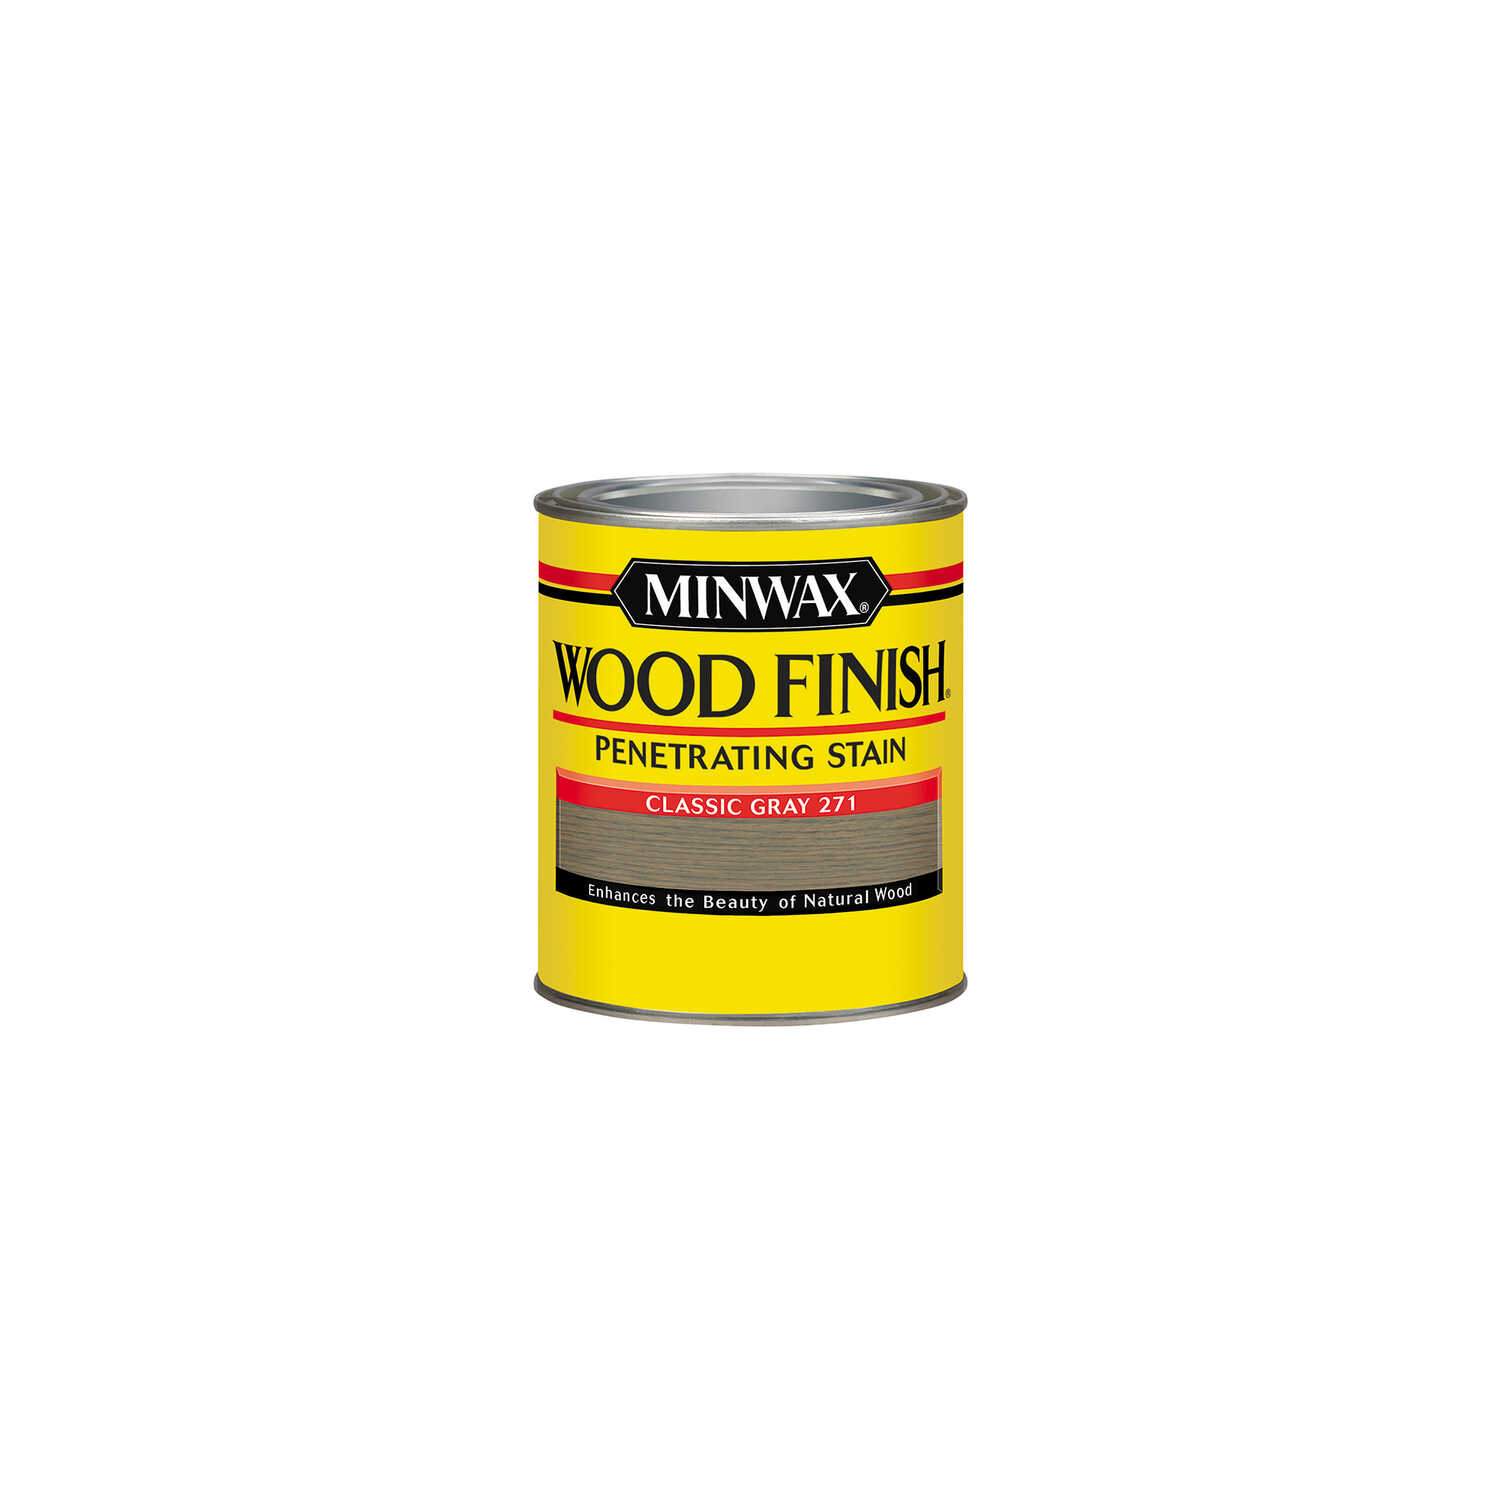 Minwax  Wood Finish  Semi-Transparent  Classic Gray  Oil-Based  Oil  Wood Stain  0.5 pt.